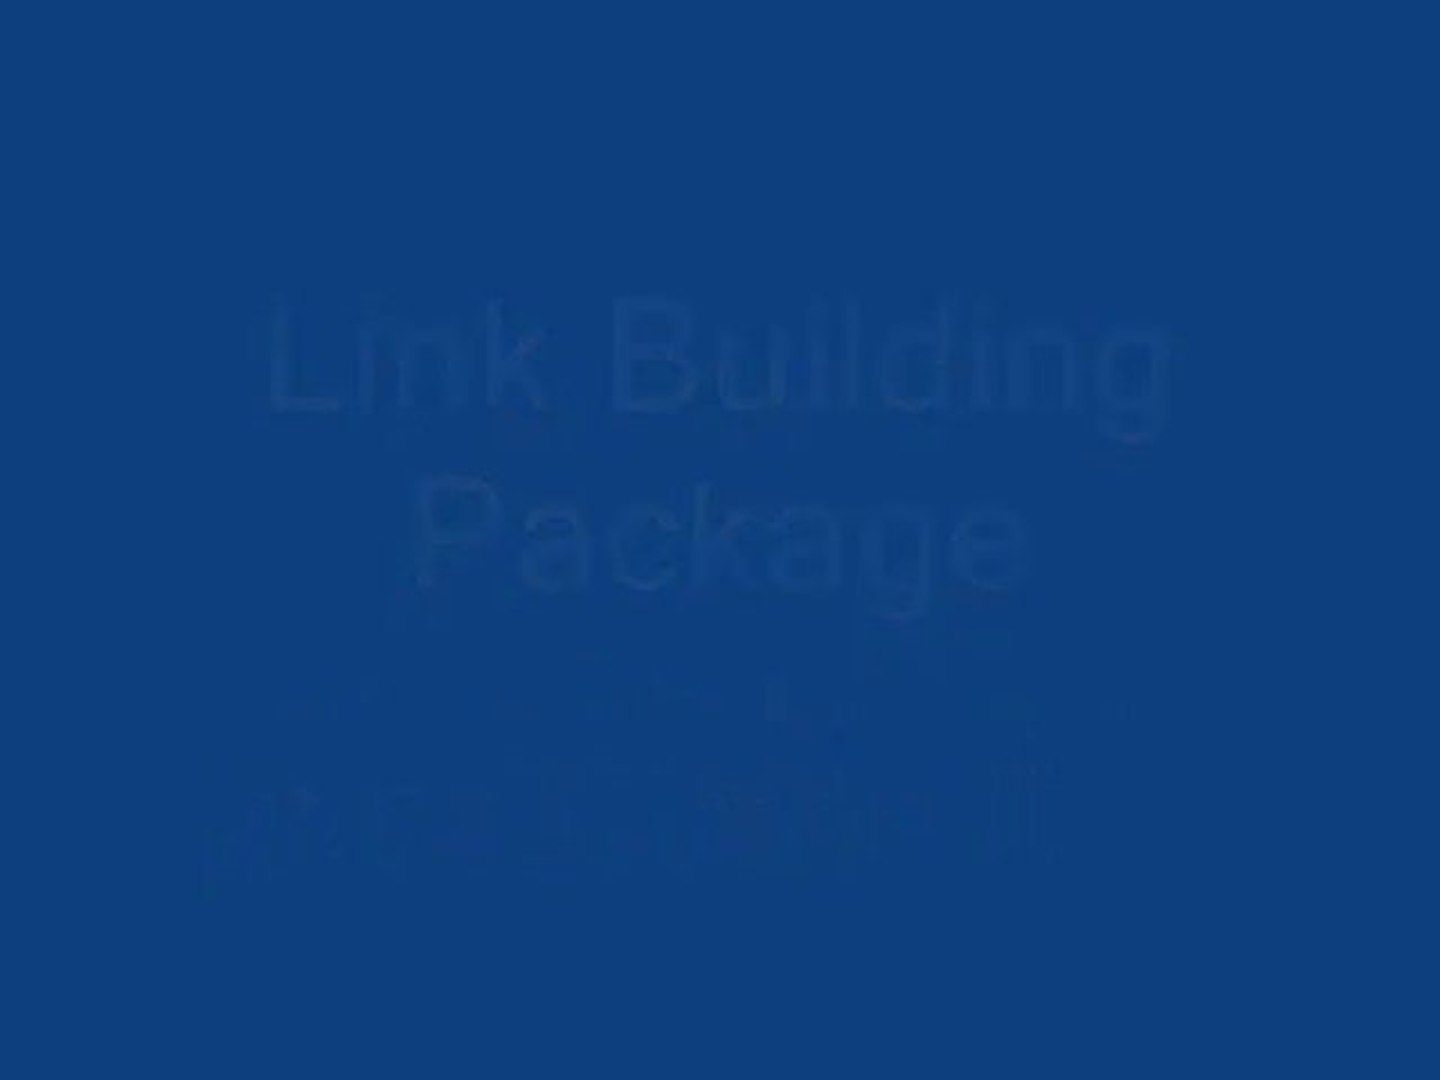 Link Building Package - To select a link building package that is most appropriate for your business